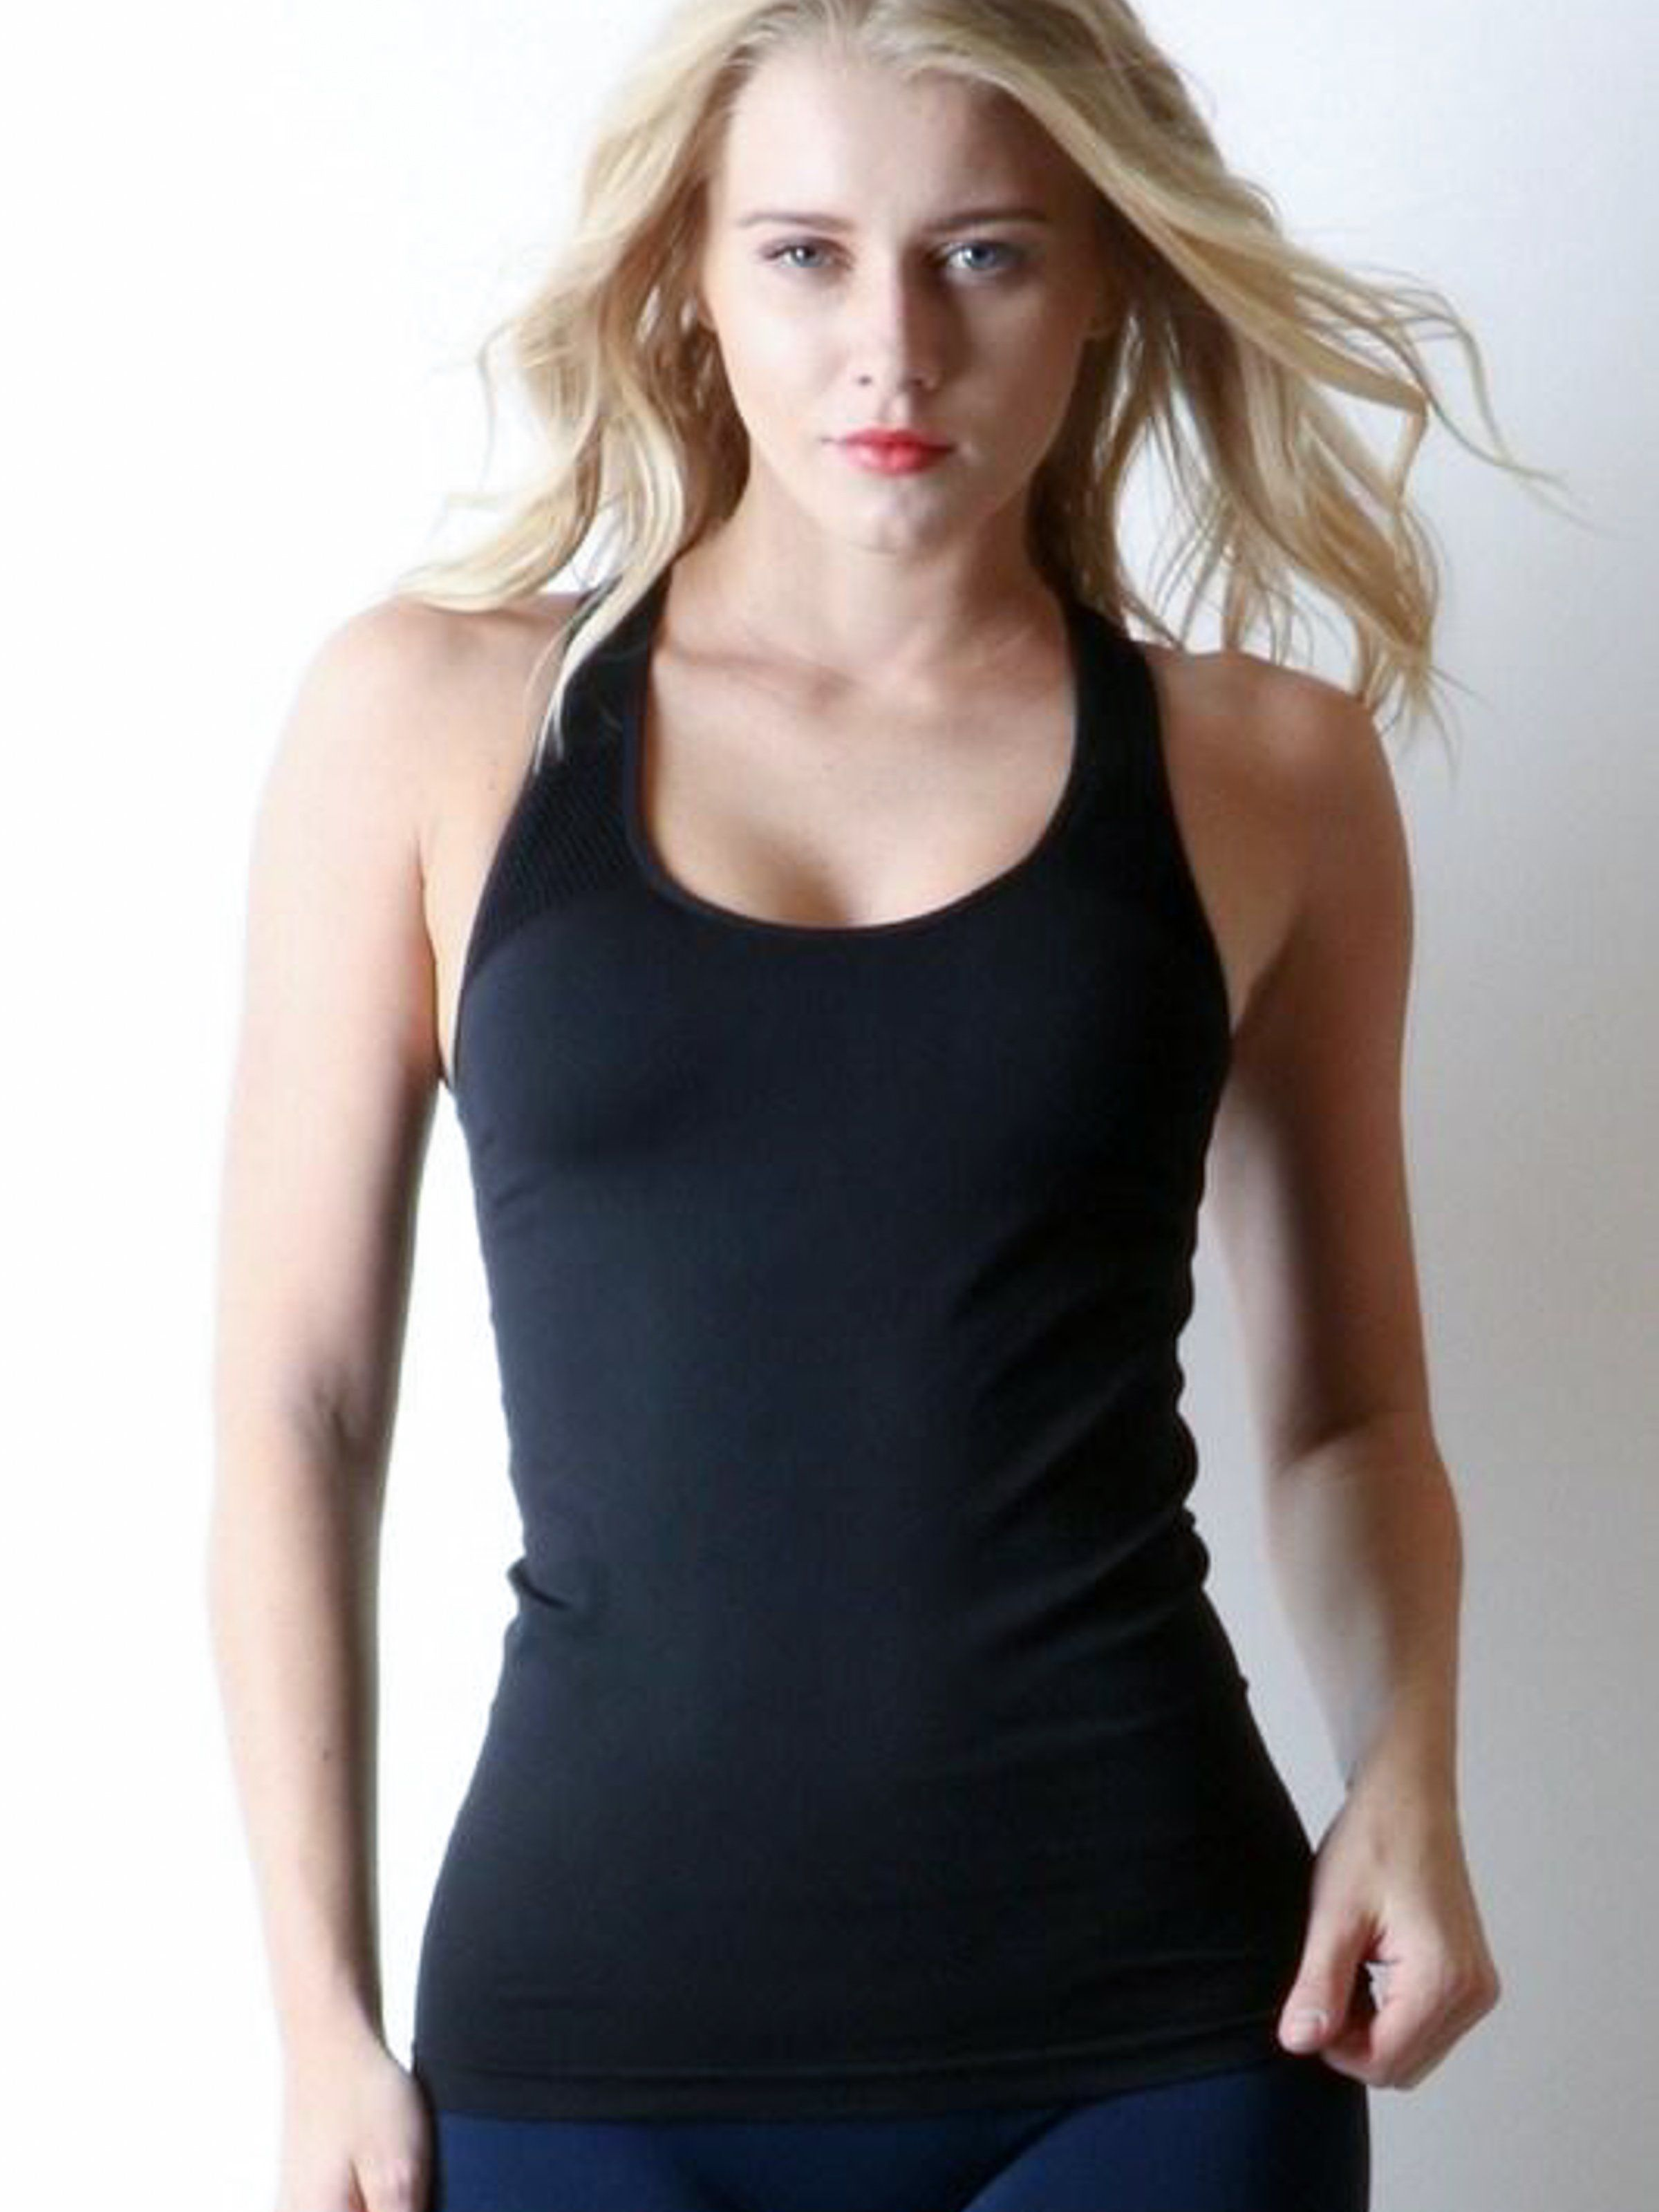 Product Details - Stretchy athletic fabric - Mesh panel ...